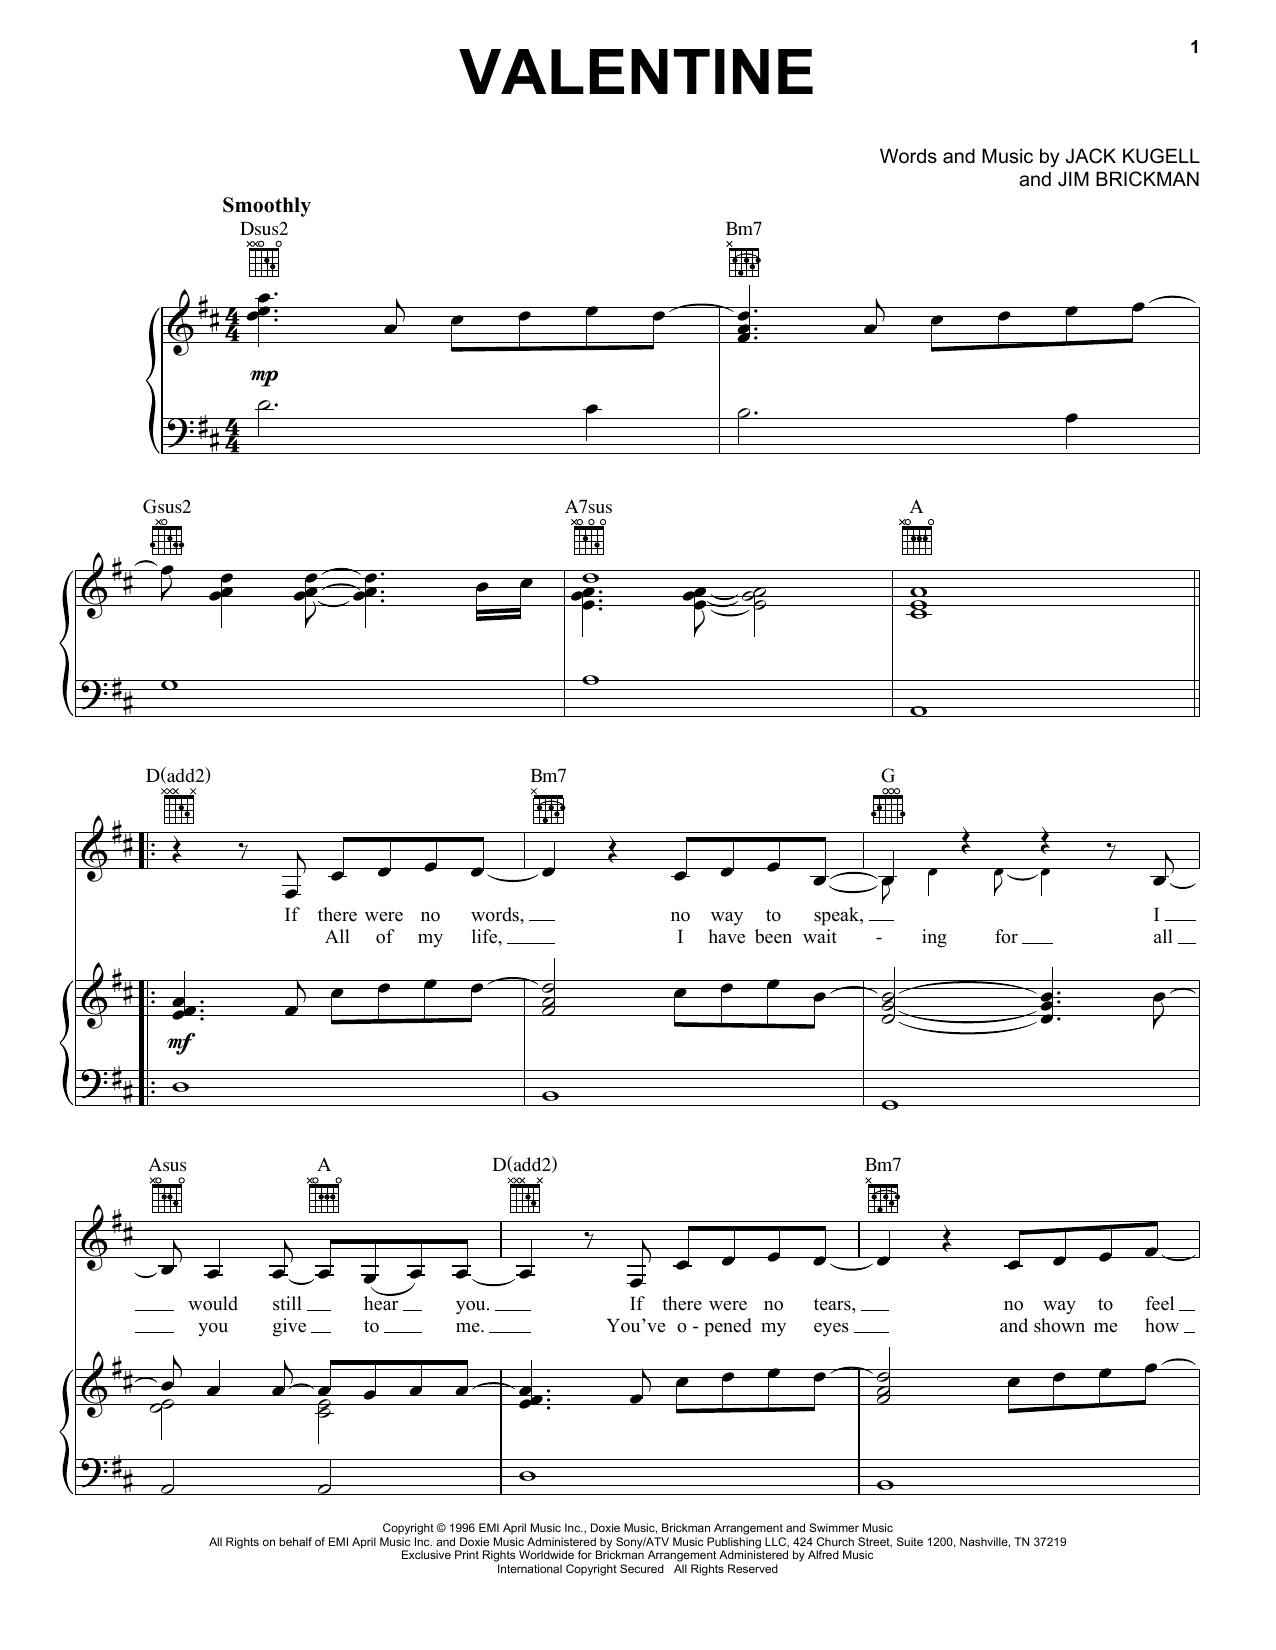 Jim Brickman with Martina McBride Valentine sheet music notes and chords